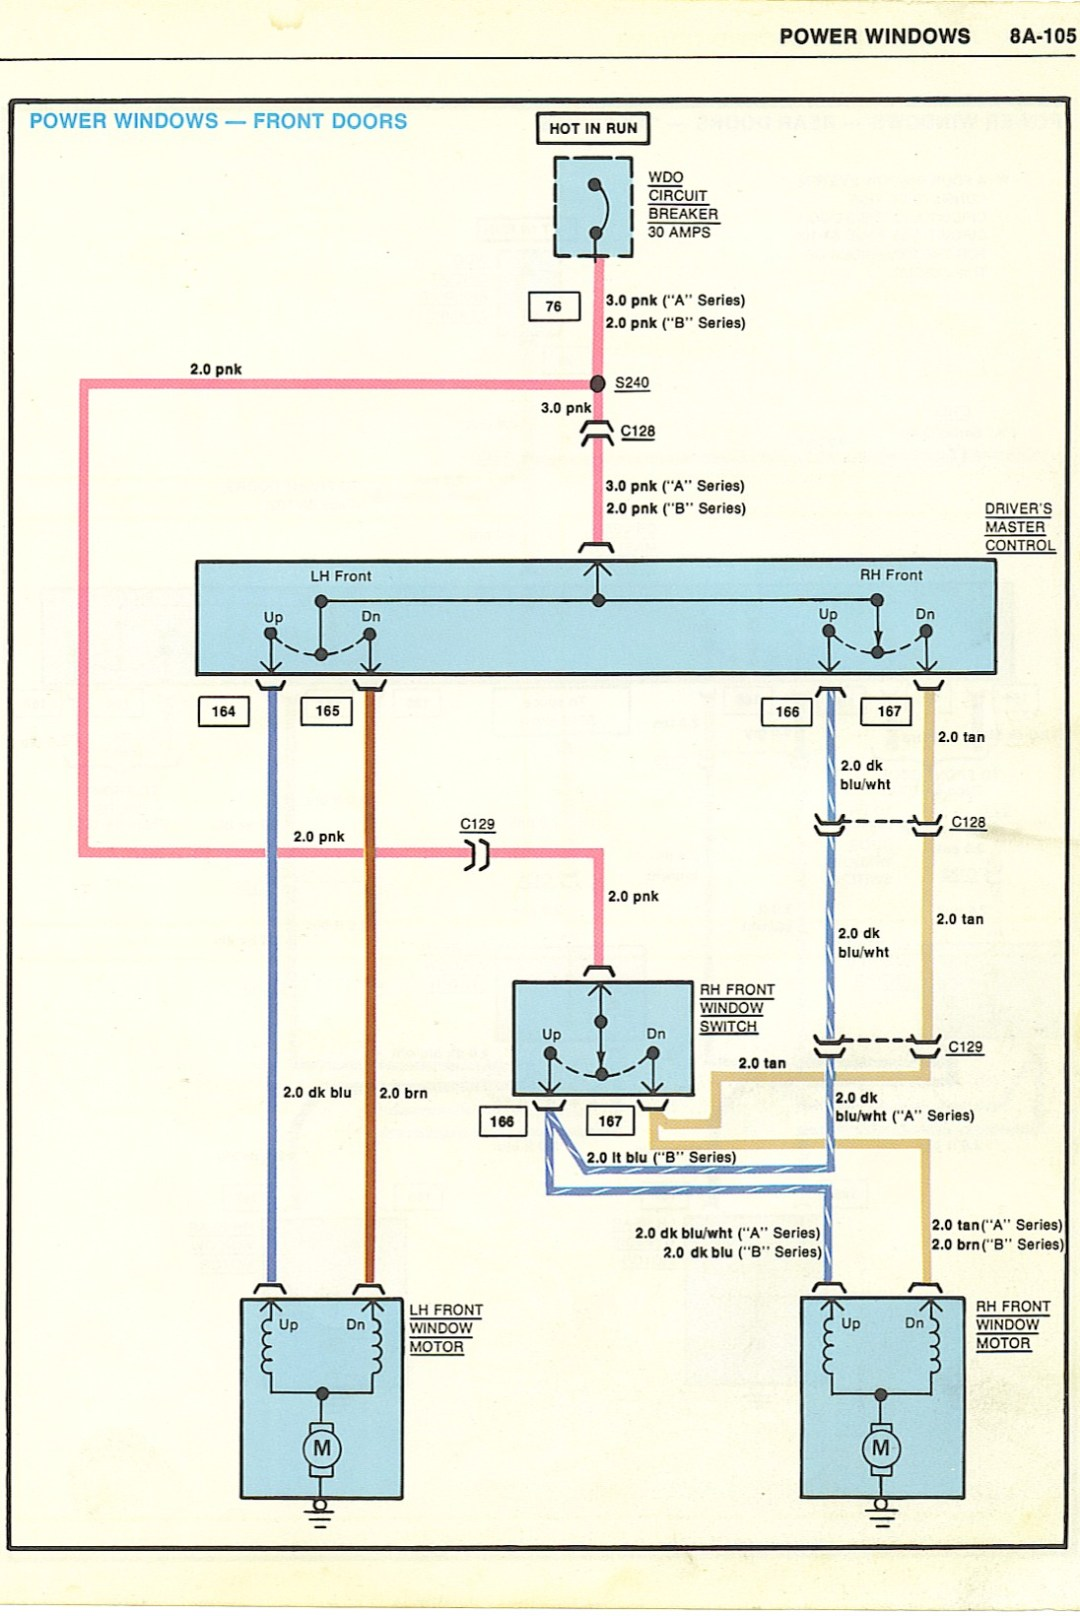 wiring diagram 78 corvette radio wiring image wiring diagram 78 corvette radio wiring auto wiring diagram on wiring diagram 78 corvette radio